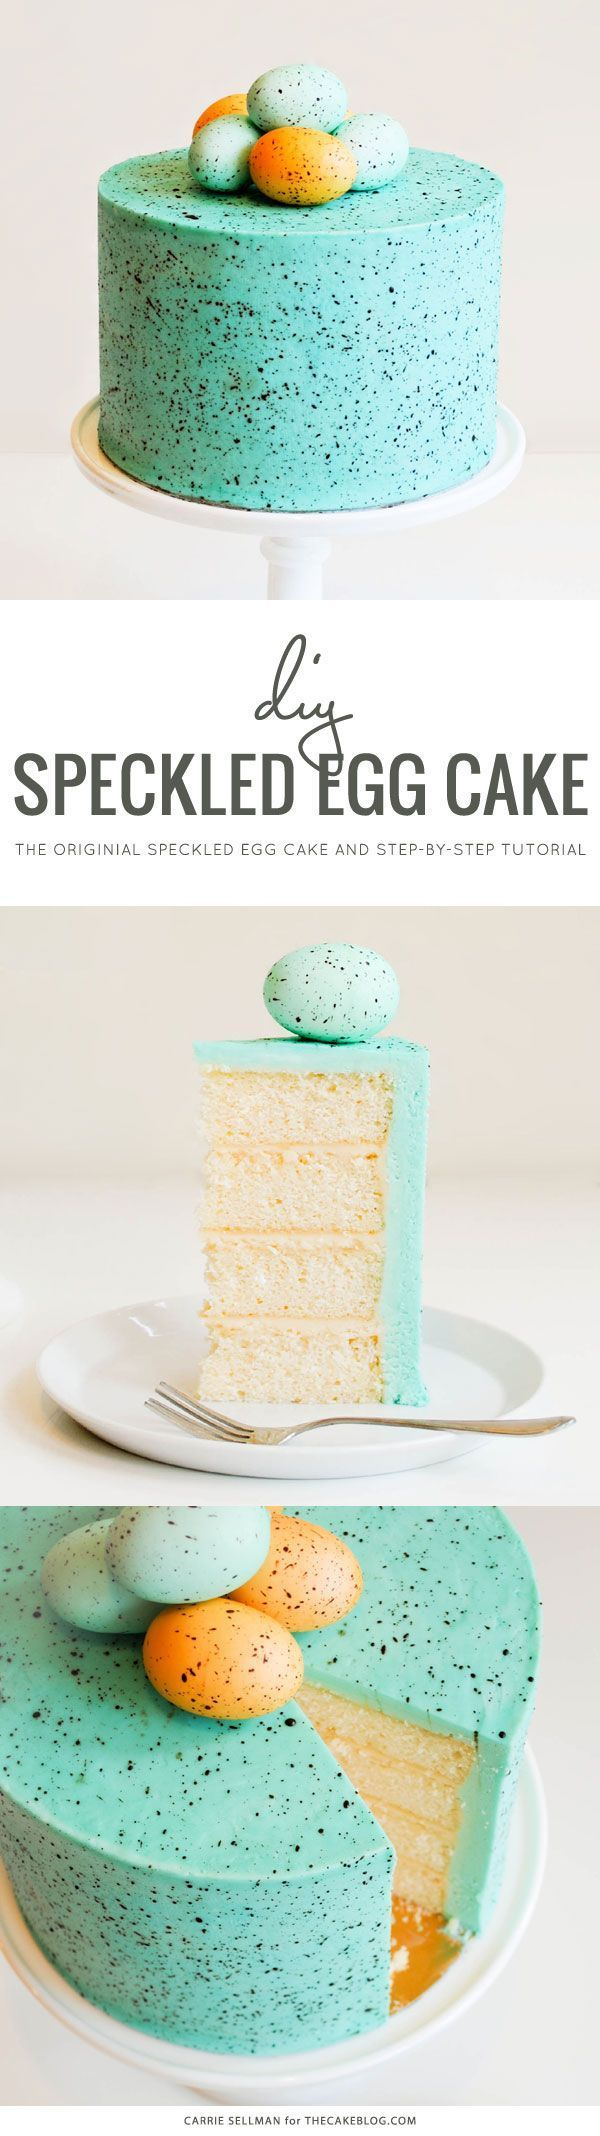 The original Speckled Egg Cake! Learn how to make a Speckled Egg Cake, perfect for your Spring and Easter celebrations. Robin's egg blue with chocolate brown speckles. | by Carrie Sellman for TheCakeBlog.com